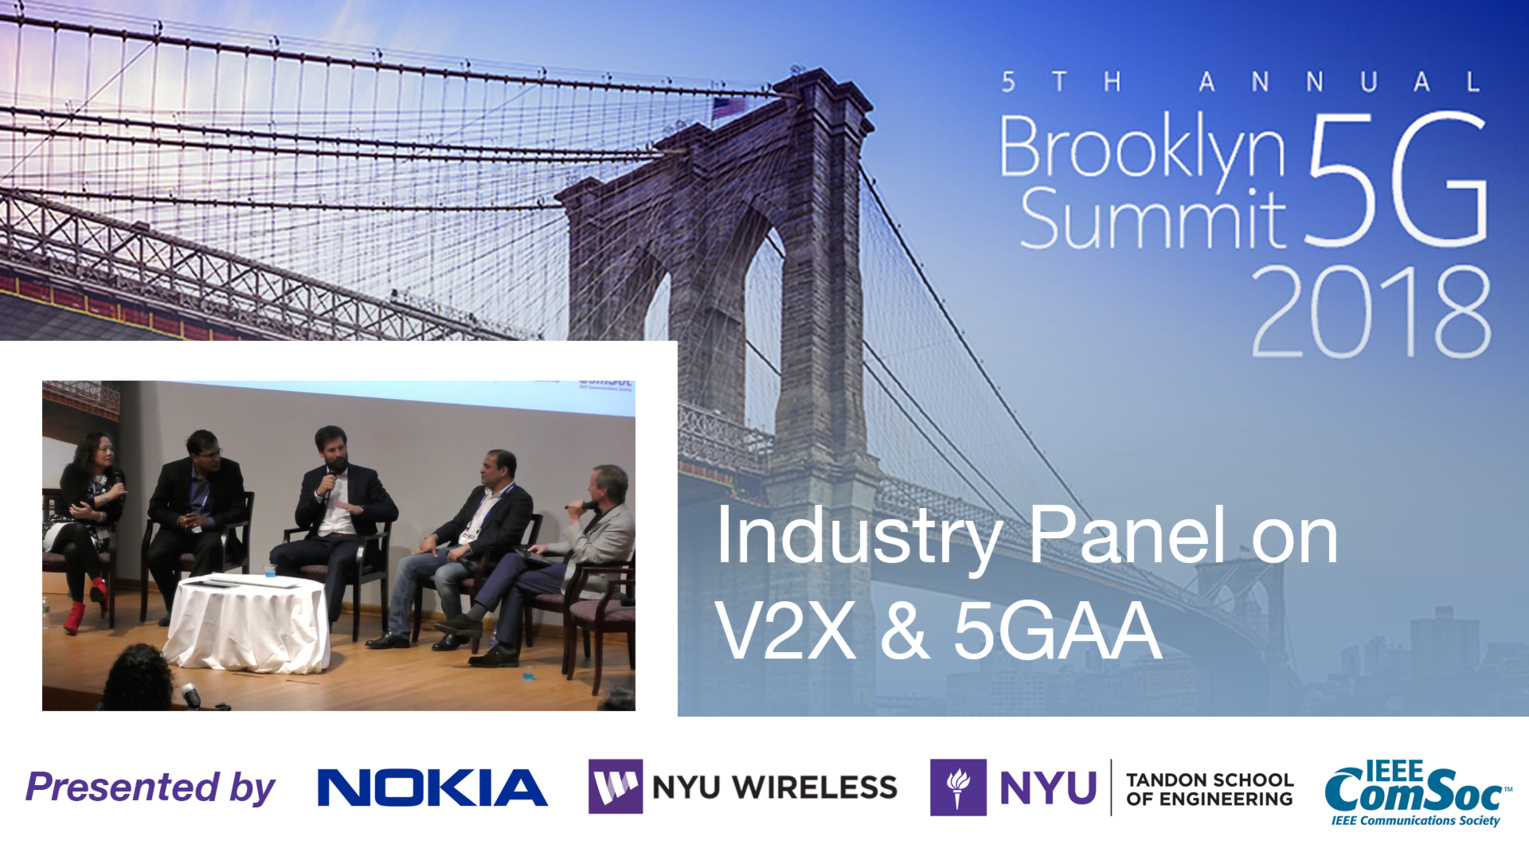 Industry Panel on V2X and 5GAA - Brooklyn 5G Summit 2018